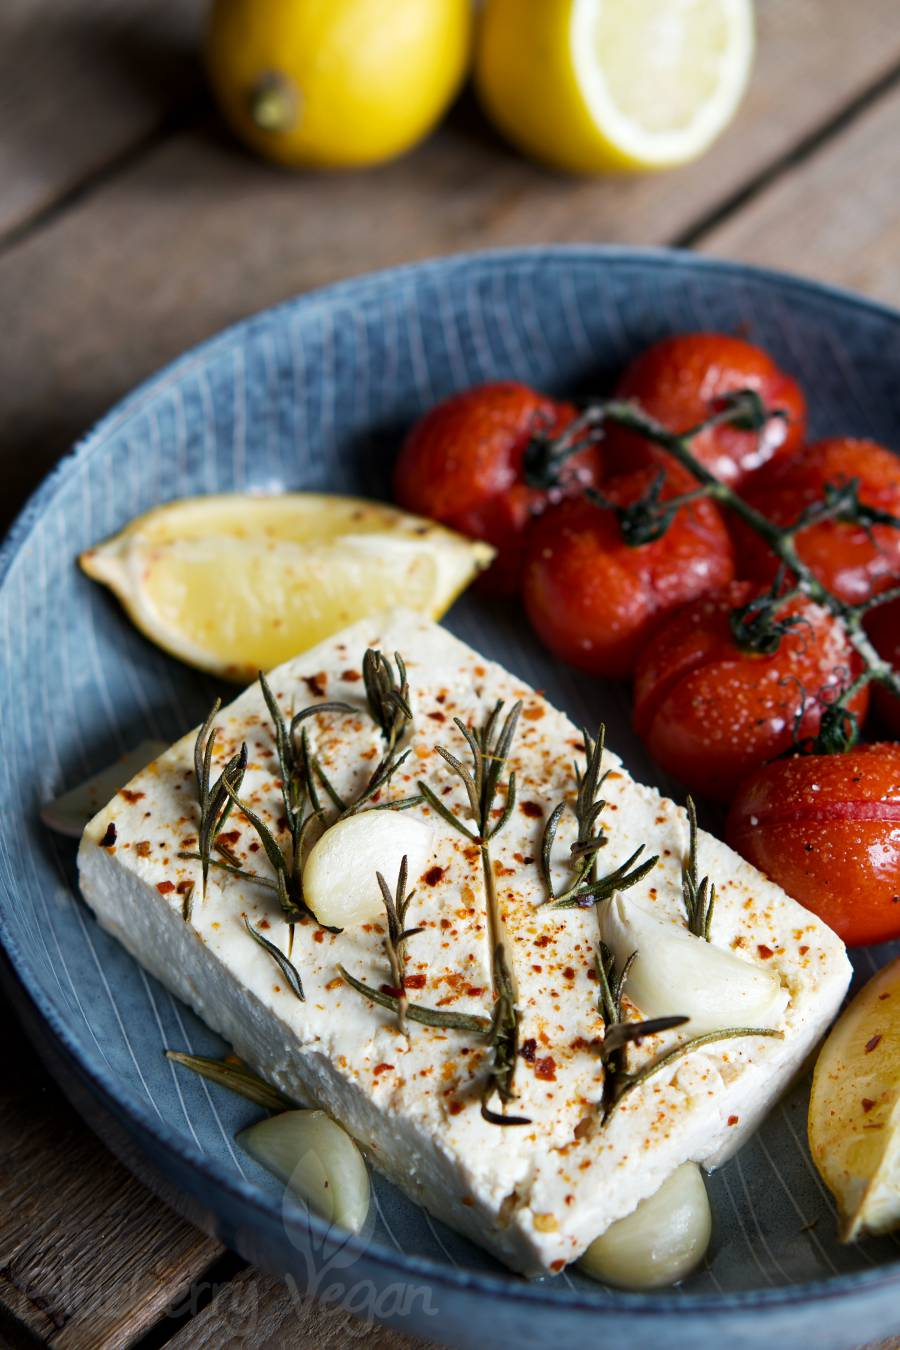 Tomato Wuppertal Baked Tofu With Lemon And Rosemary